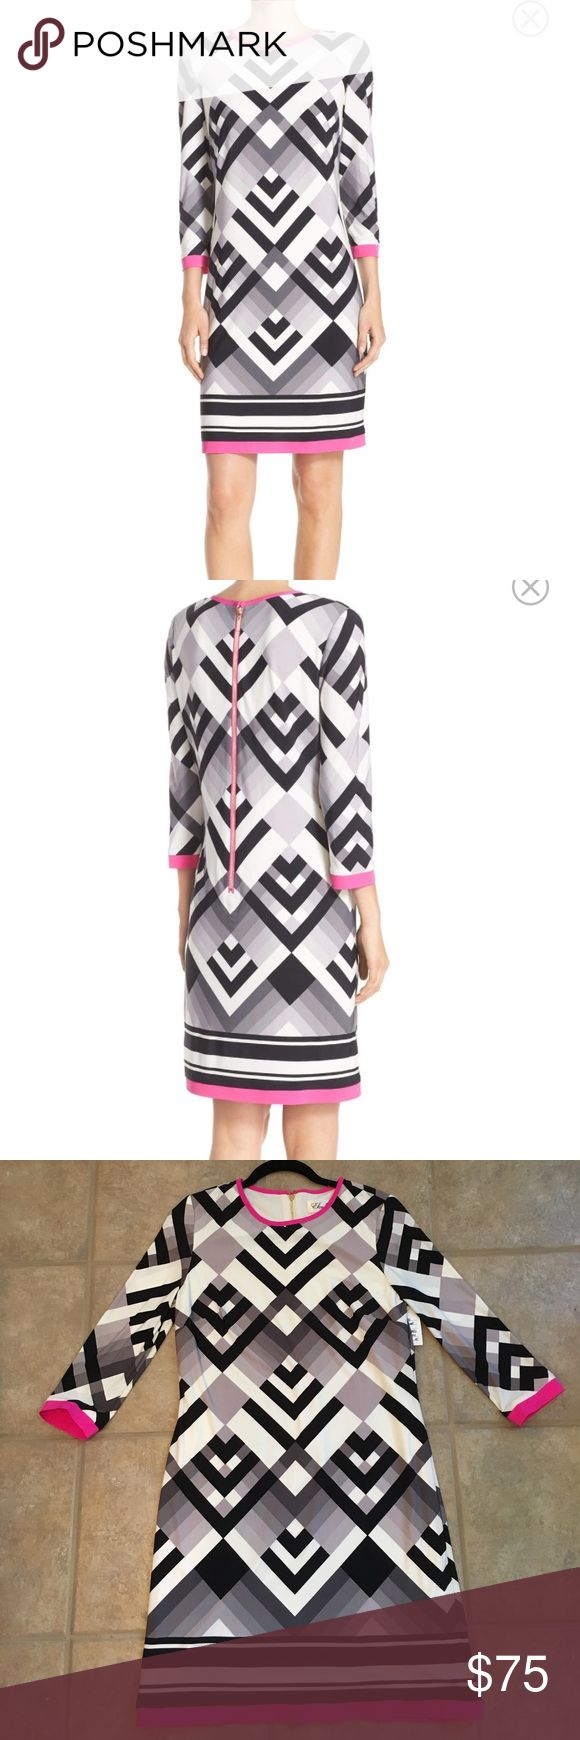 """NWT Eliza J geo patterned jersey shift dress NWT Eliza J geo patterned jersey shift dress. Size 6. Beautiful 2/3 sleeve dress in black, ivory, grey and a pop of pink trim. Back gold exposed zipper. Length measurement from center back = 35.5"""" (1st pics are stock photos from Nordstrom site) Eliza J Dresses"""